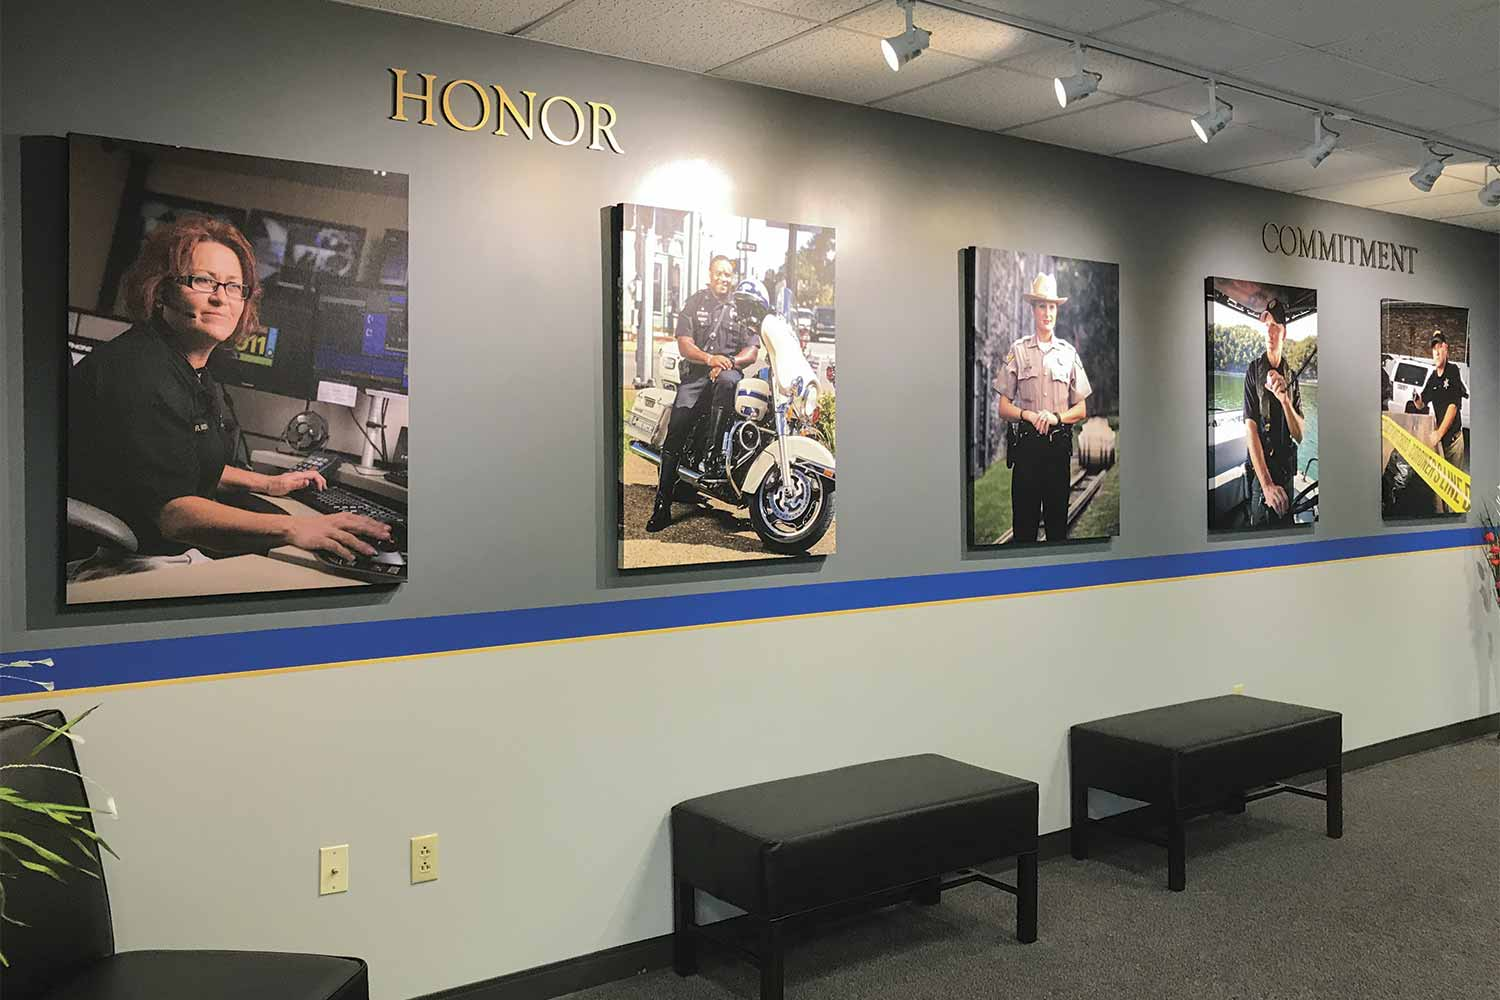 Portraits from left represent dispatchers, police, sheriffs, state law enforcement agencies and coroners - all clients served by DOCJT. Their photos are prominently displayed in the Funderburk lobby as a reminder of what's most important in training. (Photo by Kevin Brumfield)